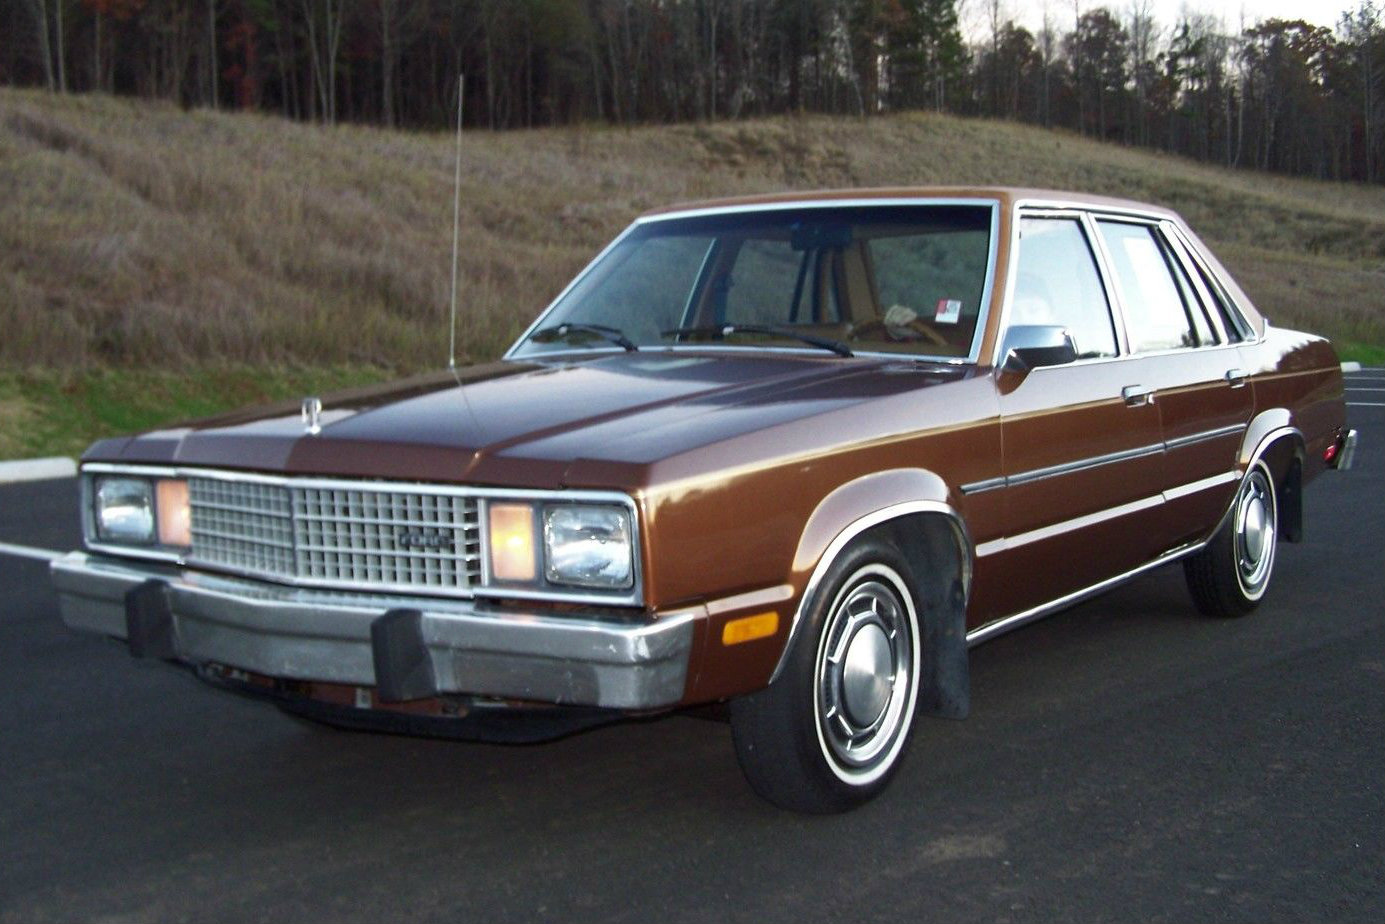 Car That Runs On Air >> Plain Brown Wrapper! Ford Fairmont Survivor